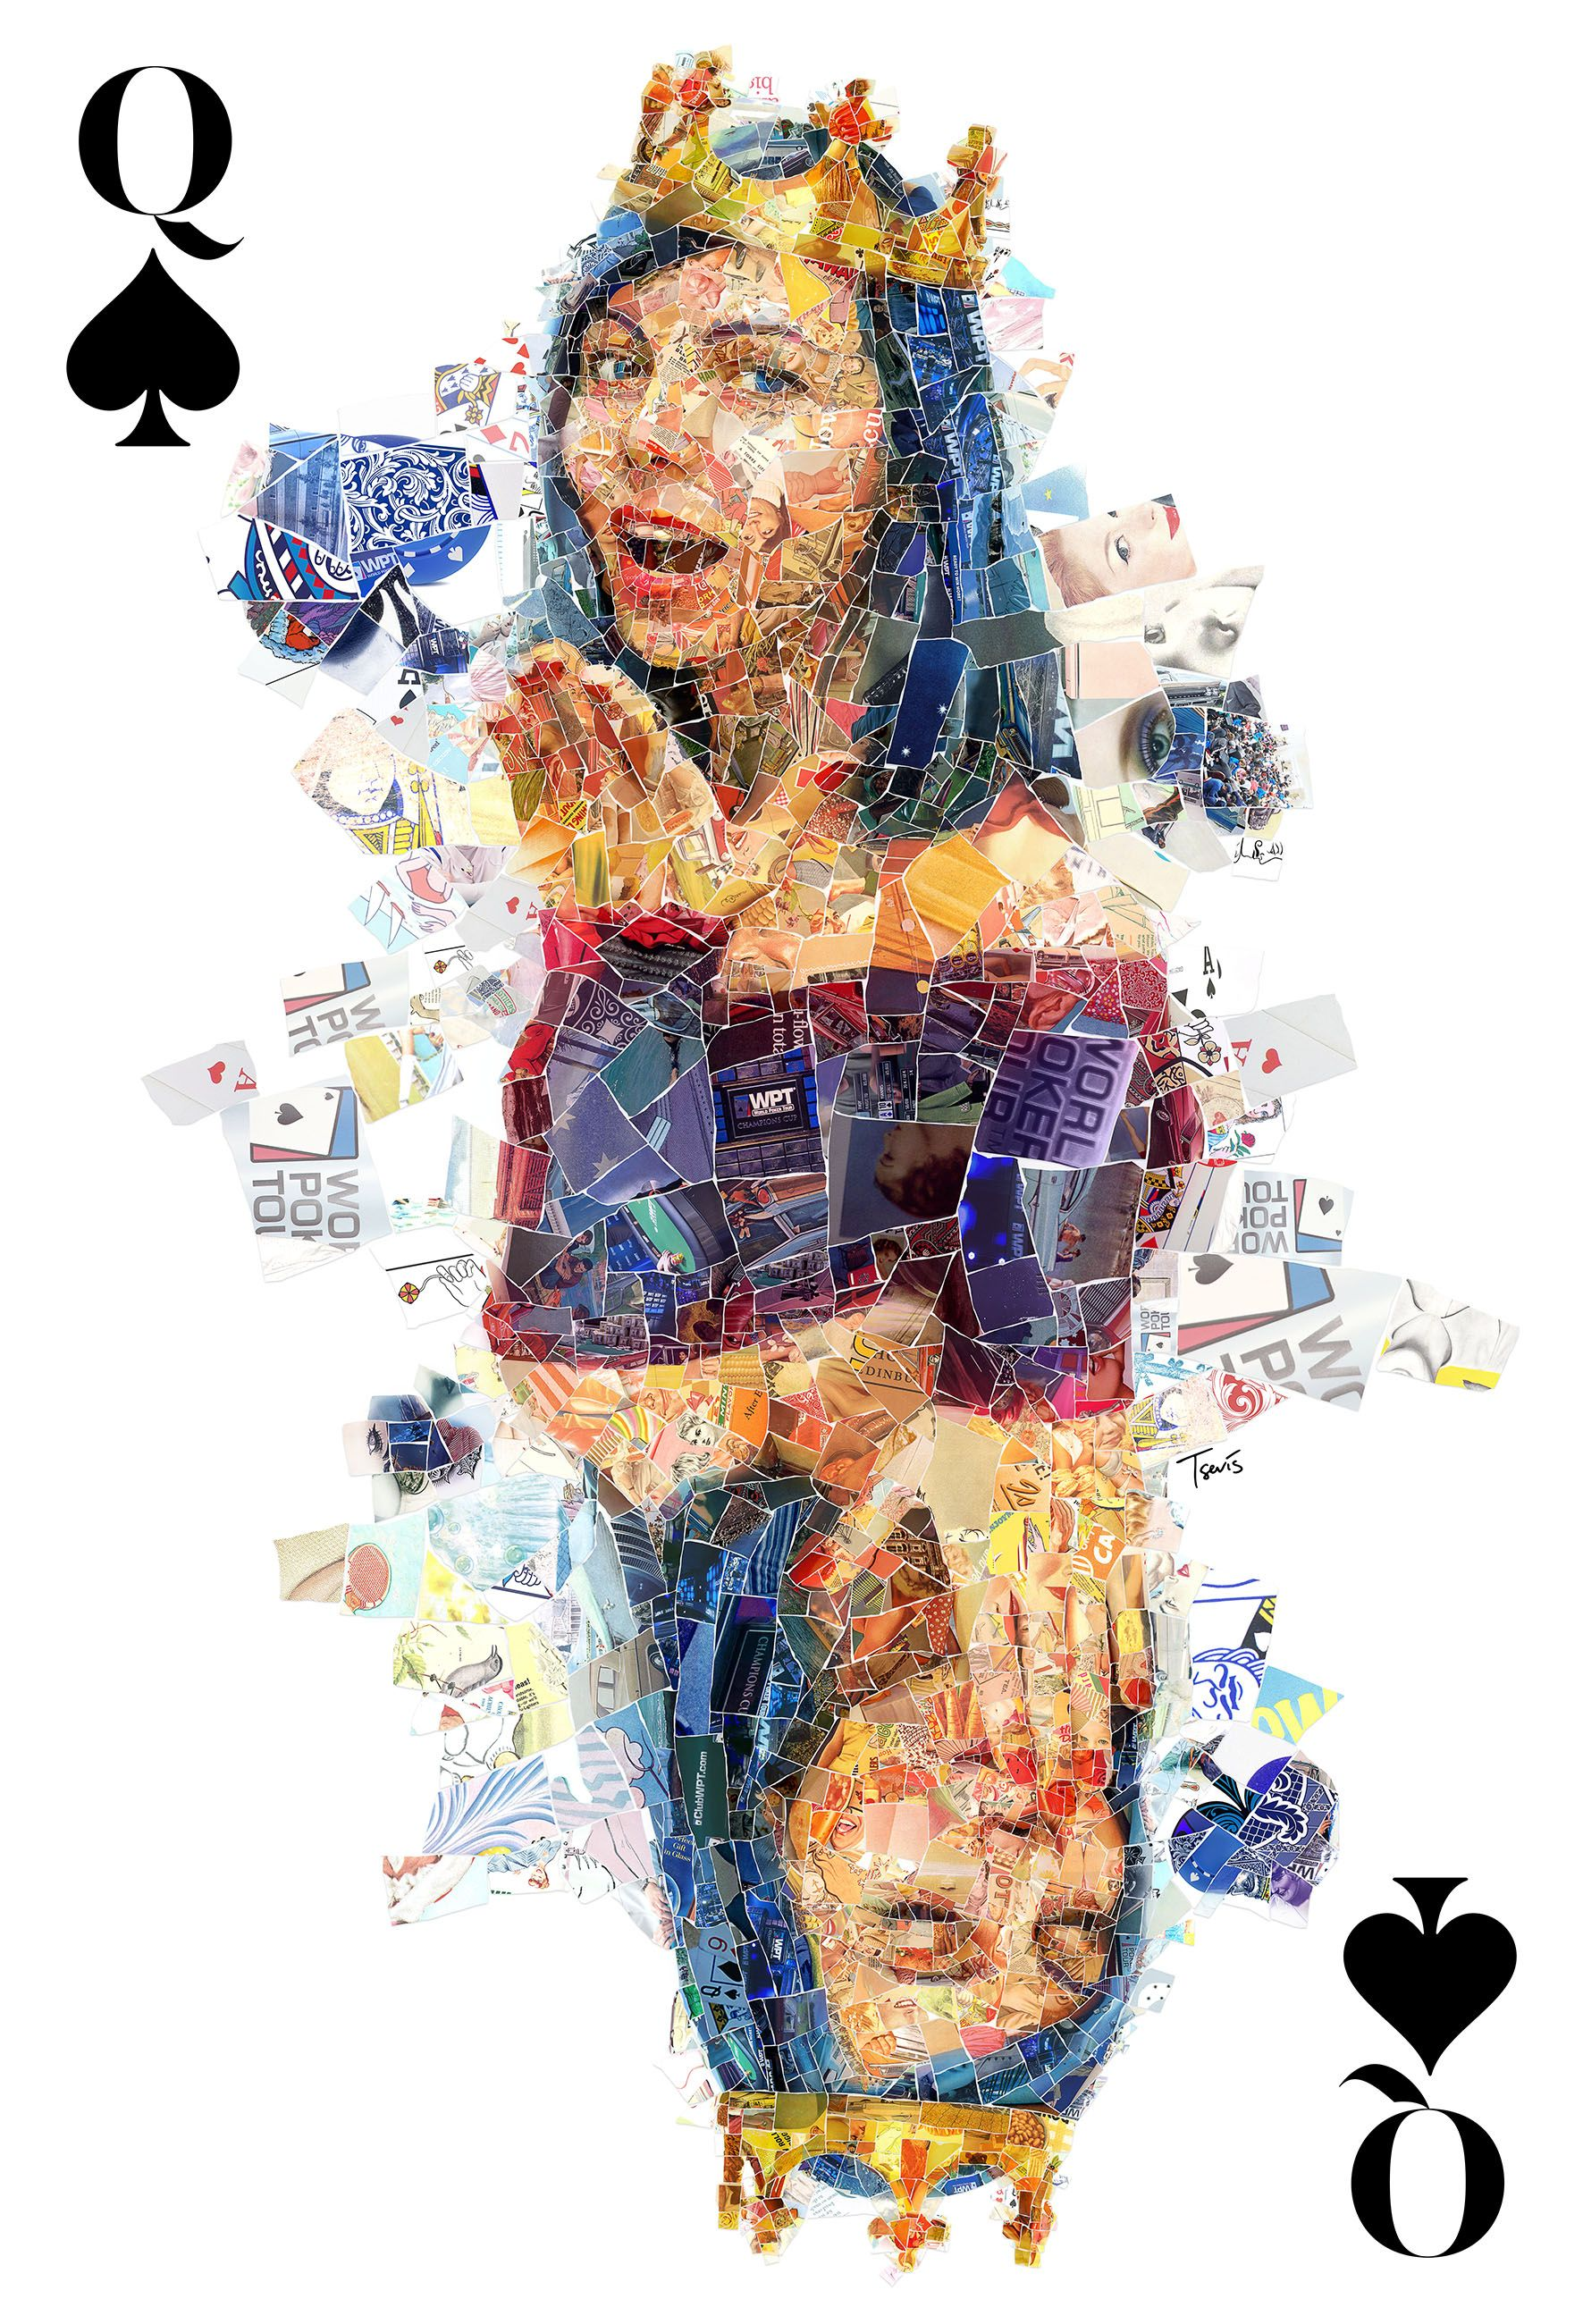 My Queen Of Spades (for The World Poker Tour) #mosaic #photomosaic #